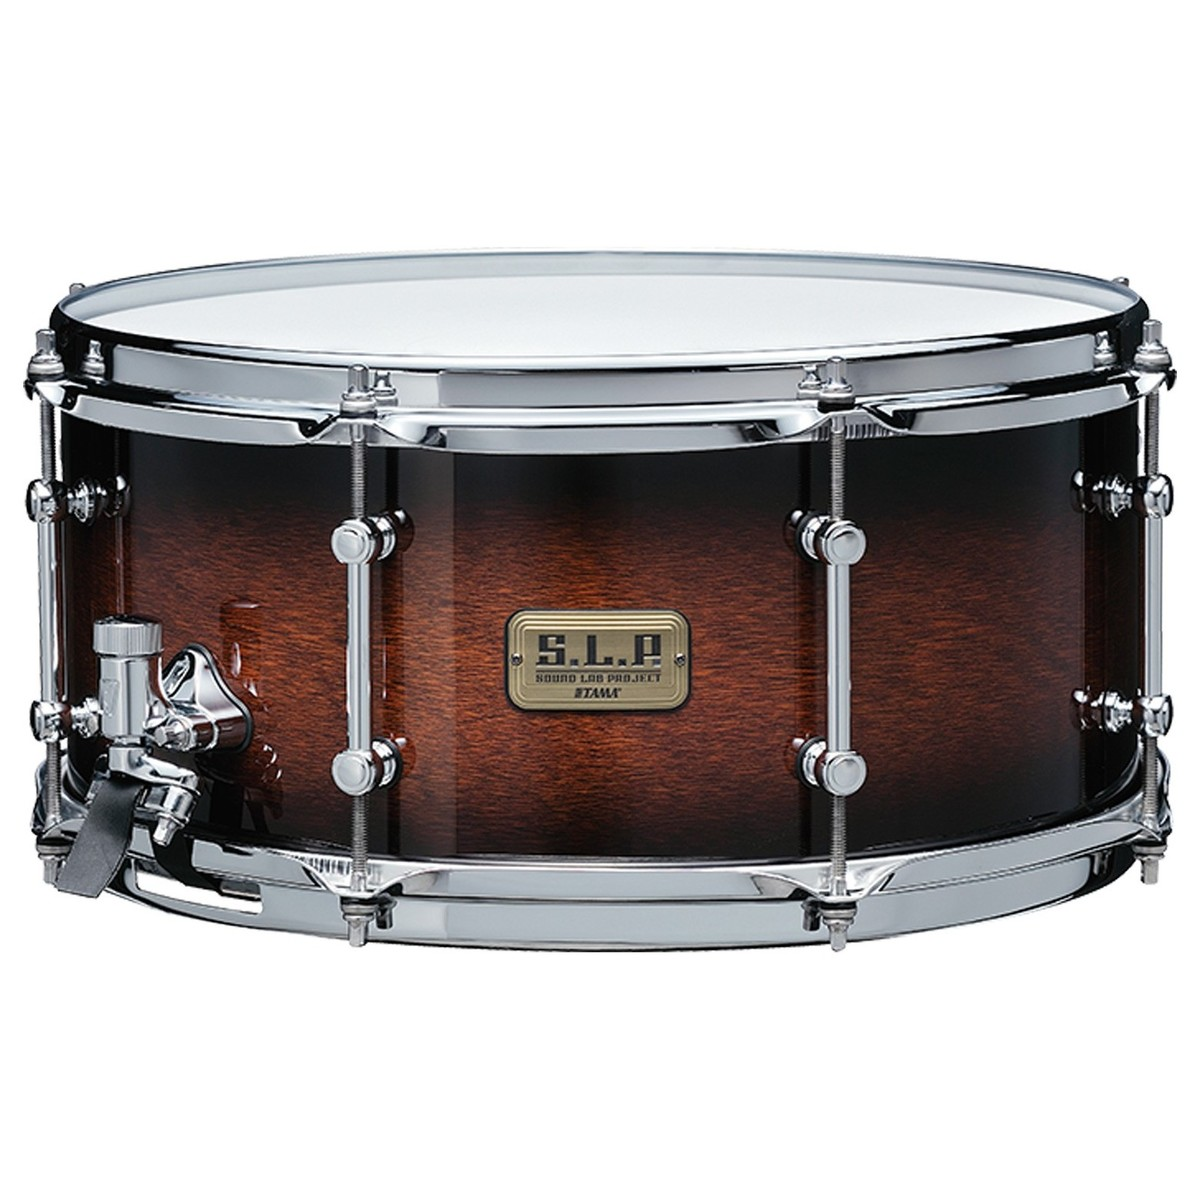 Click to view product details and reviews for Tama Slp 14 X 65 Dynamic Kapur Snare Drum Black Kapur Burst.